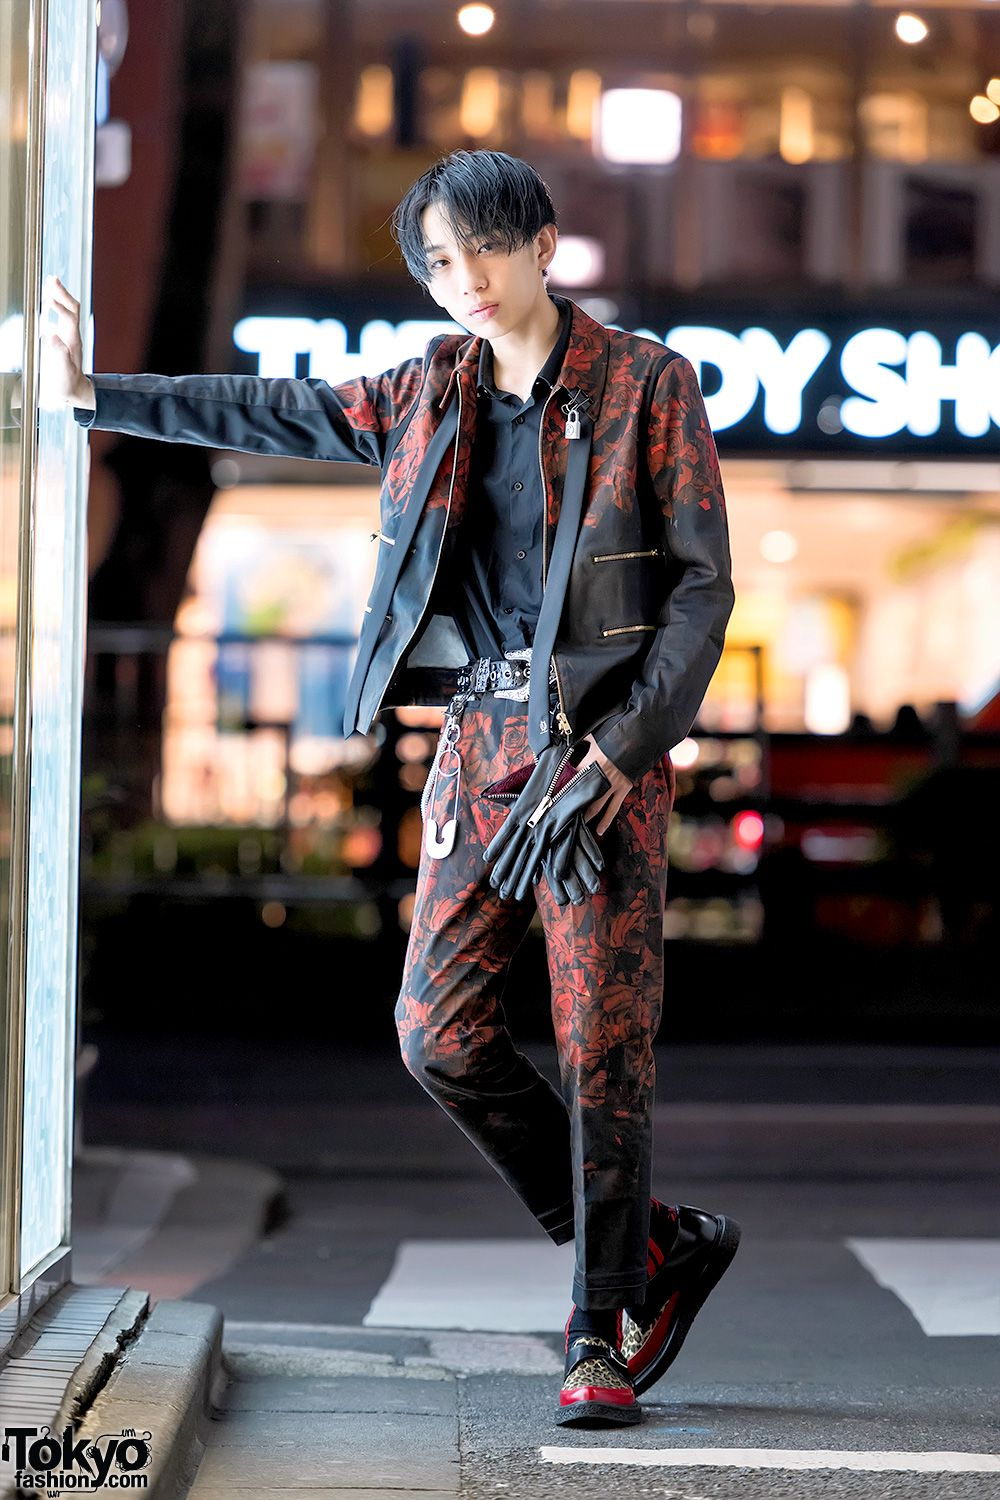 Paul Smith Rose Print Suit Saint Laurent 99 Is On The Street In Harajuku Japan Fashion Street Harajuku Fashion Street Harajuku